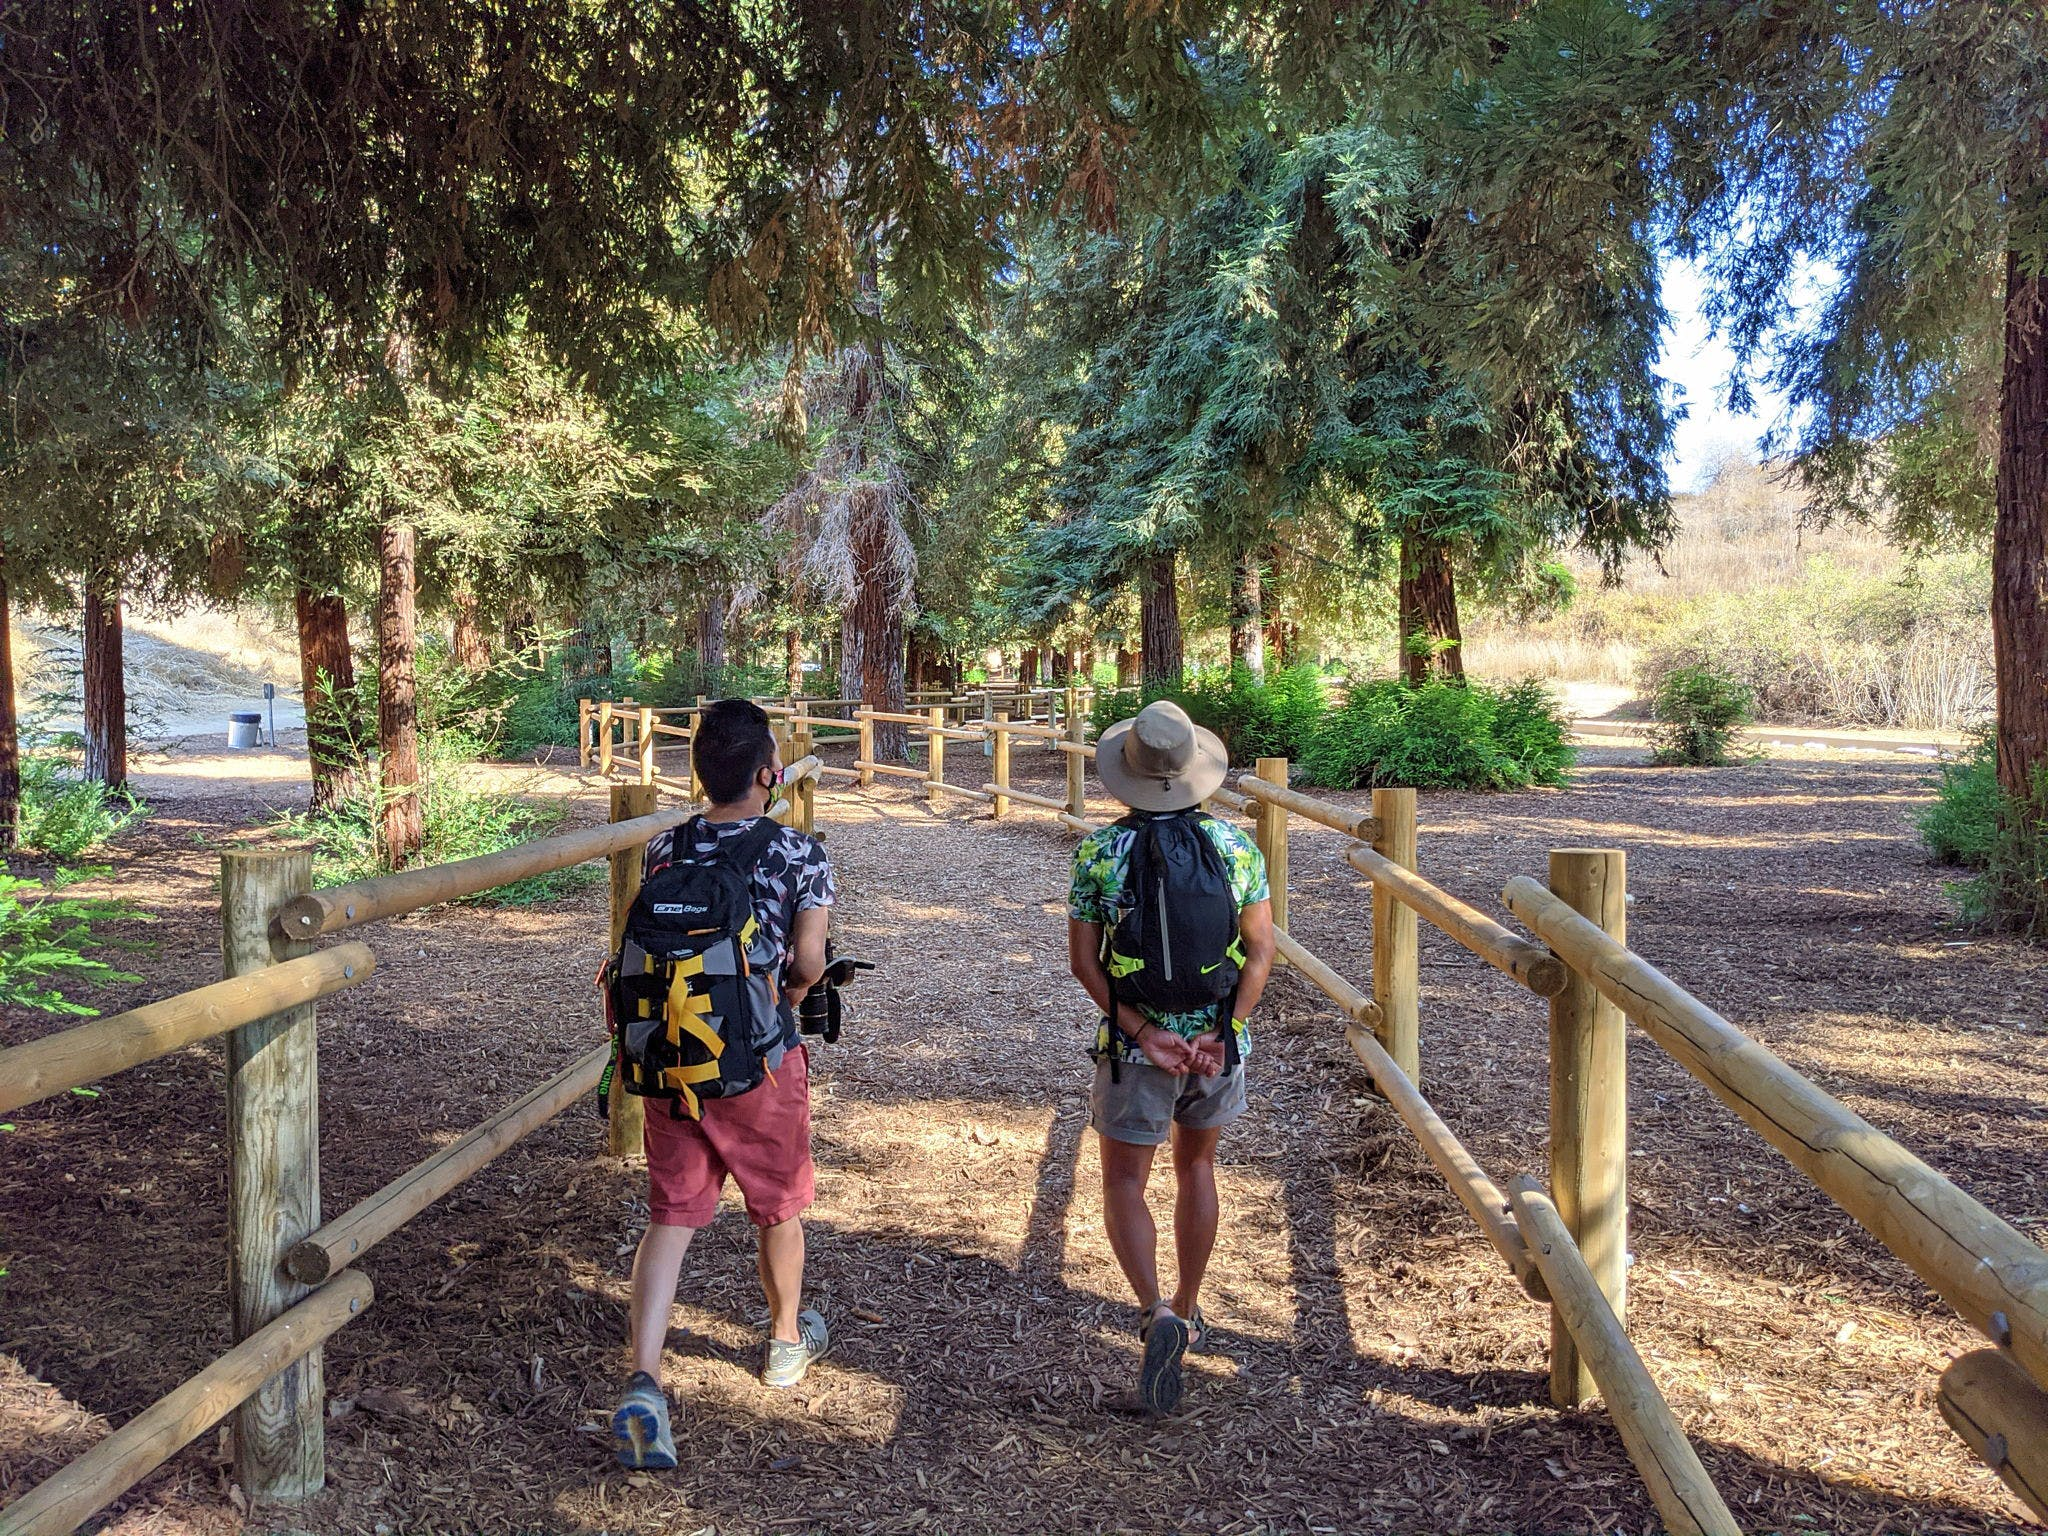 Two hikers among redwoods in Carbon Canyon Regional Park in Orange County